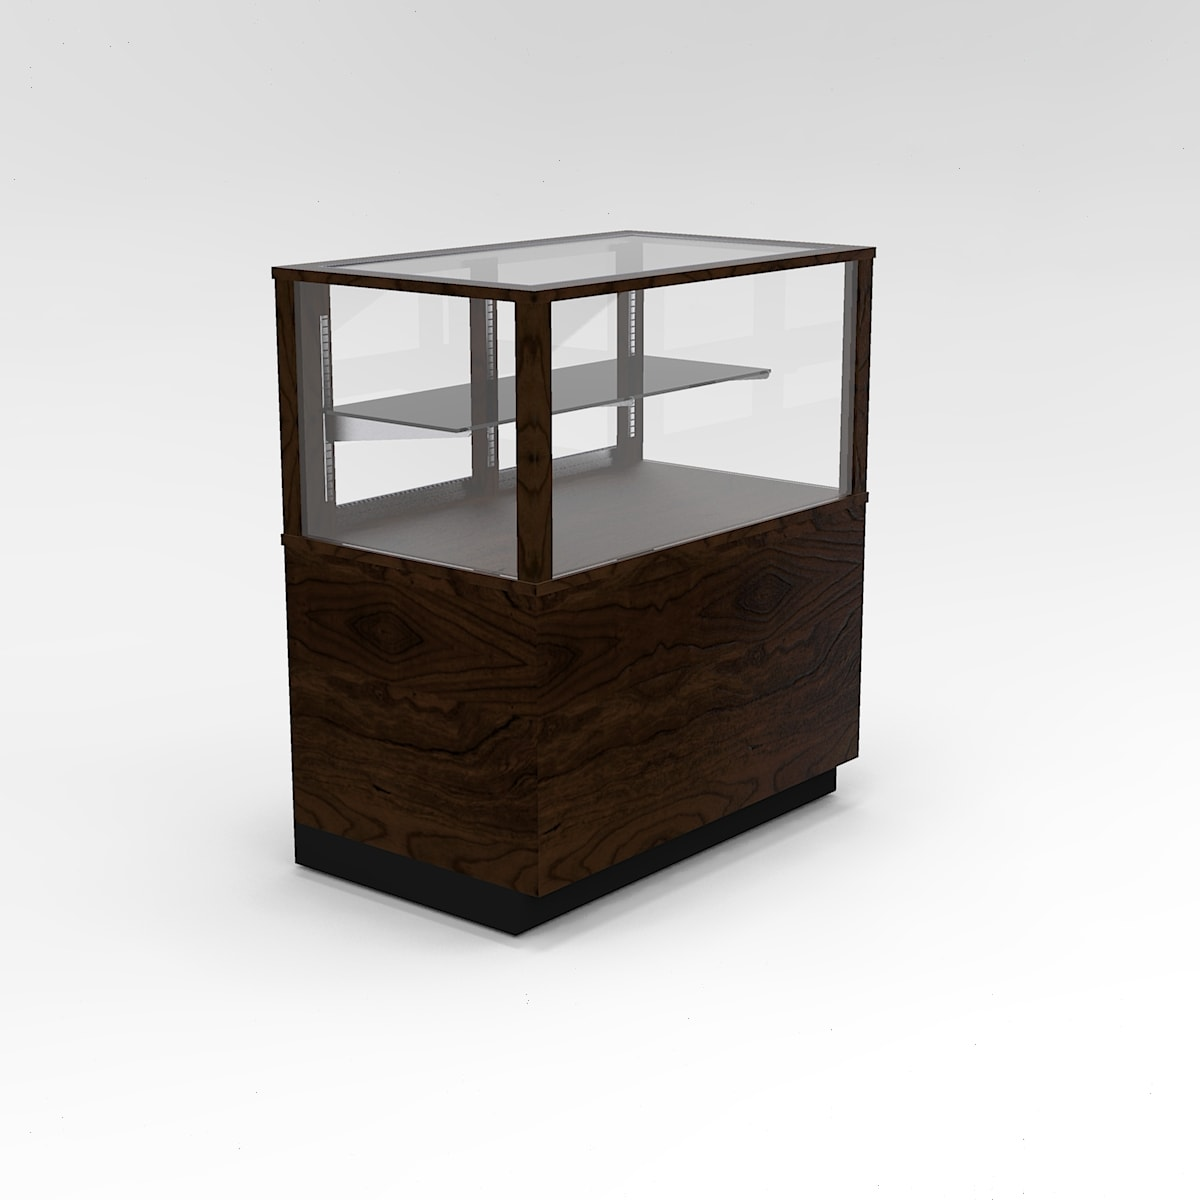 36 Inch Half Vision Contemporary Rectangle Horizontal Display Case To Purchase